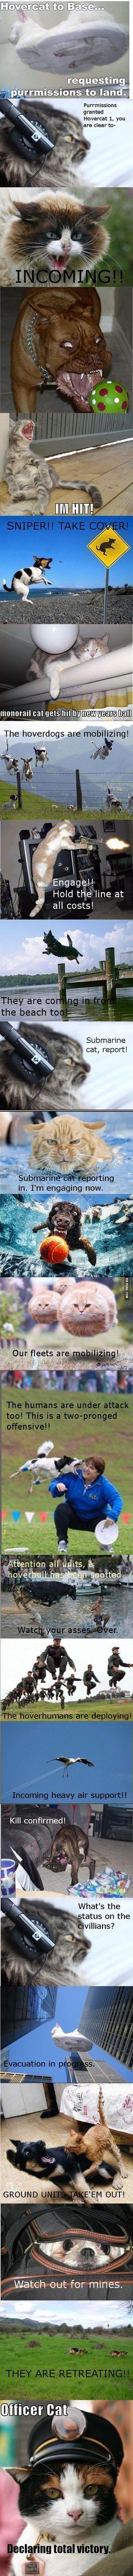 A confusing war friend sent it to me. Still can't stop laughing. - 9GAG